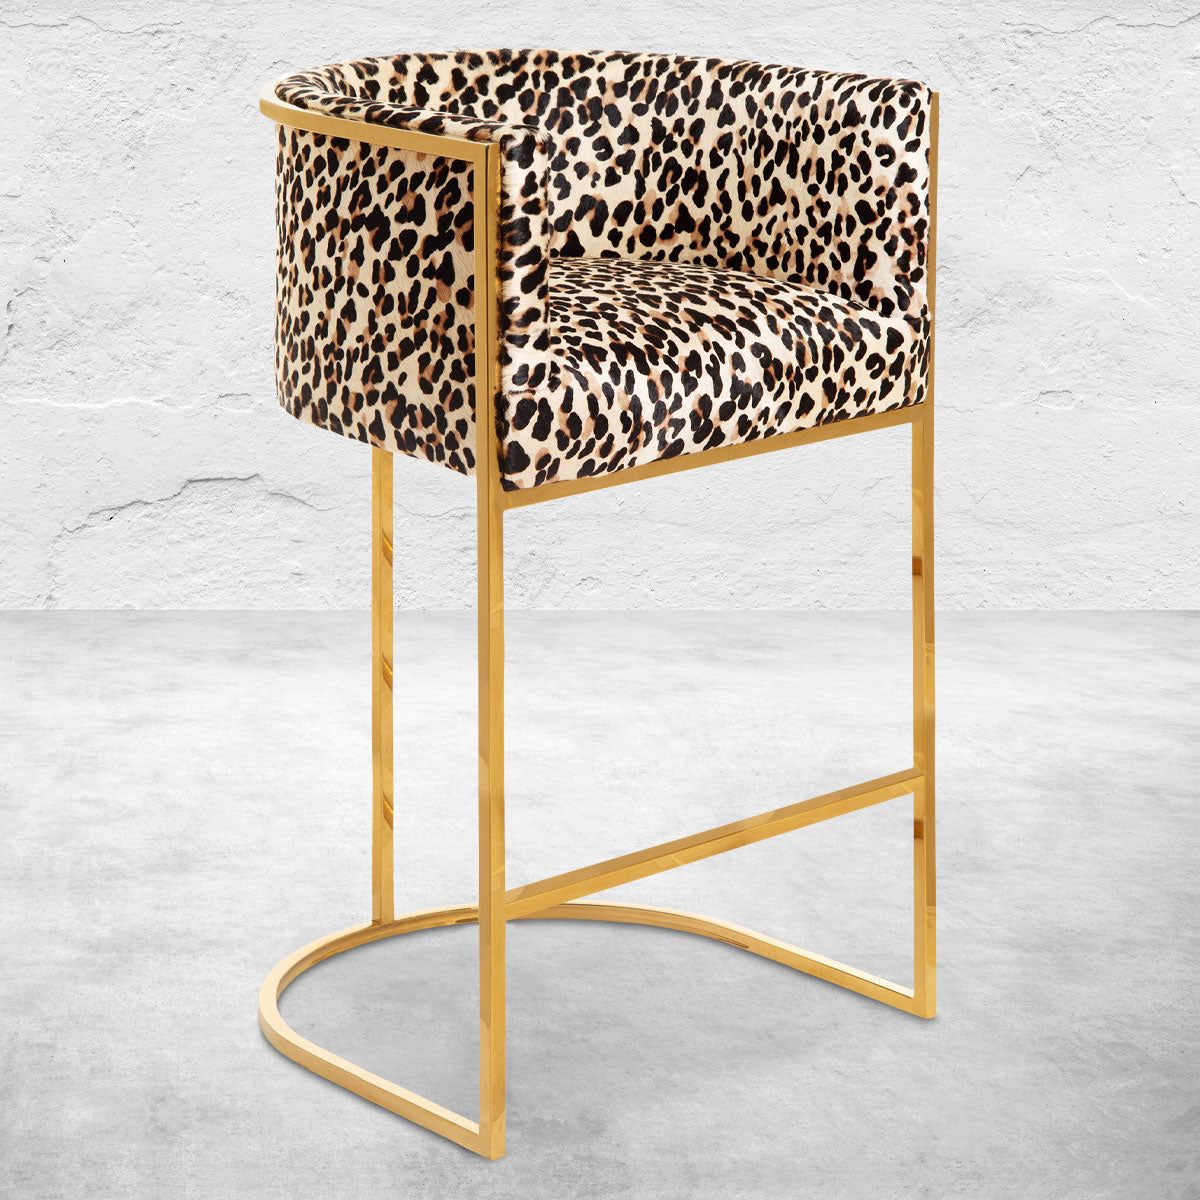 Lisbon Bar and Counter Stool in Leopard Print Cowhide